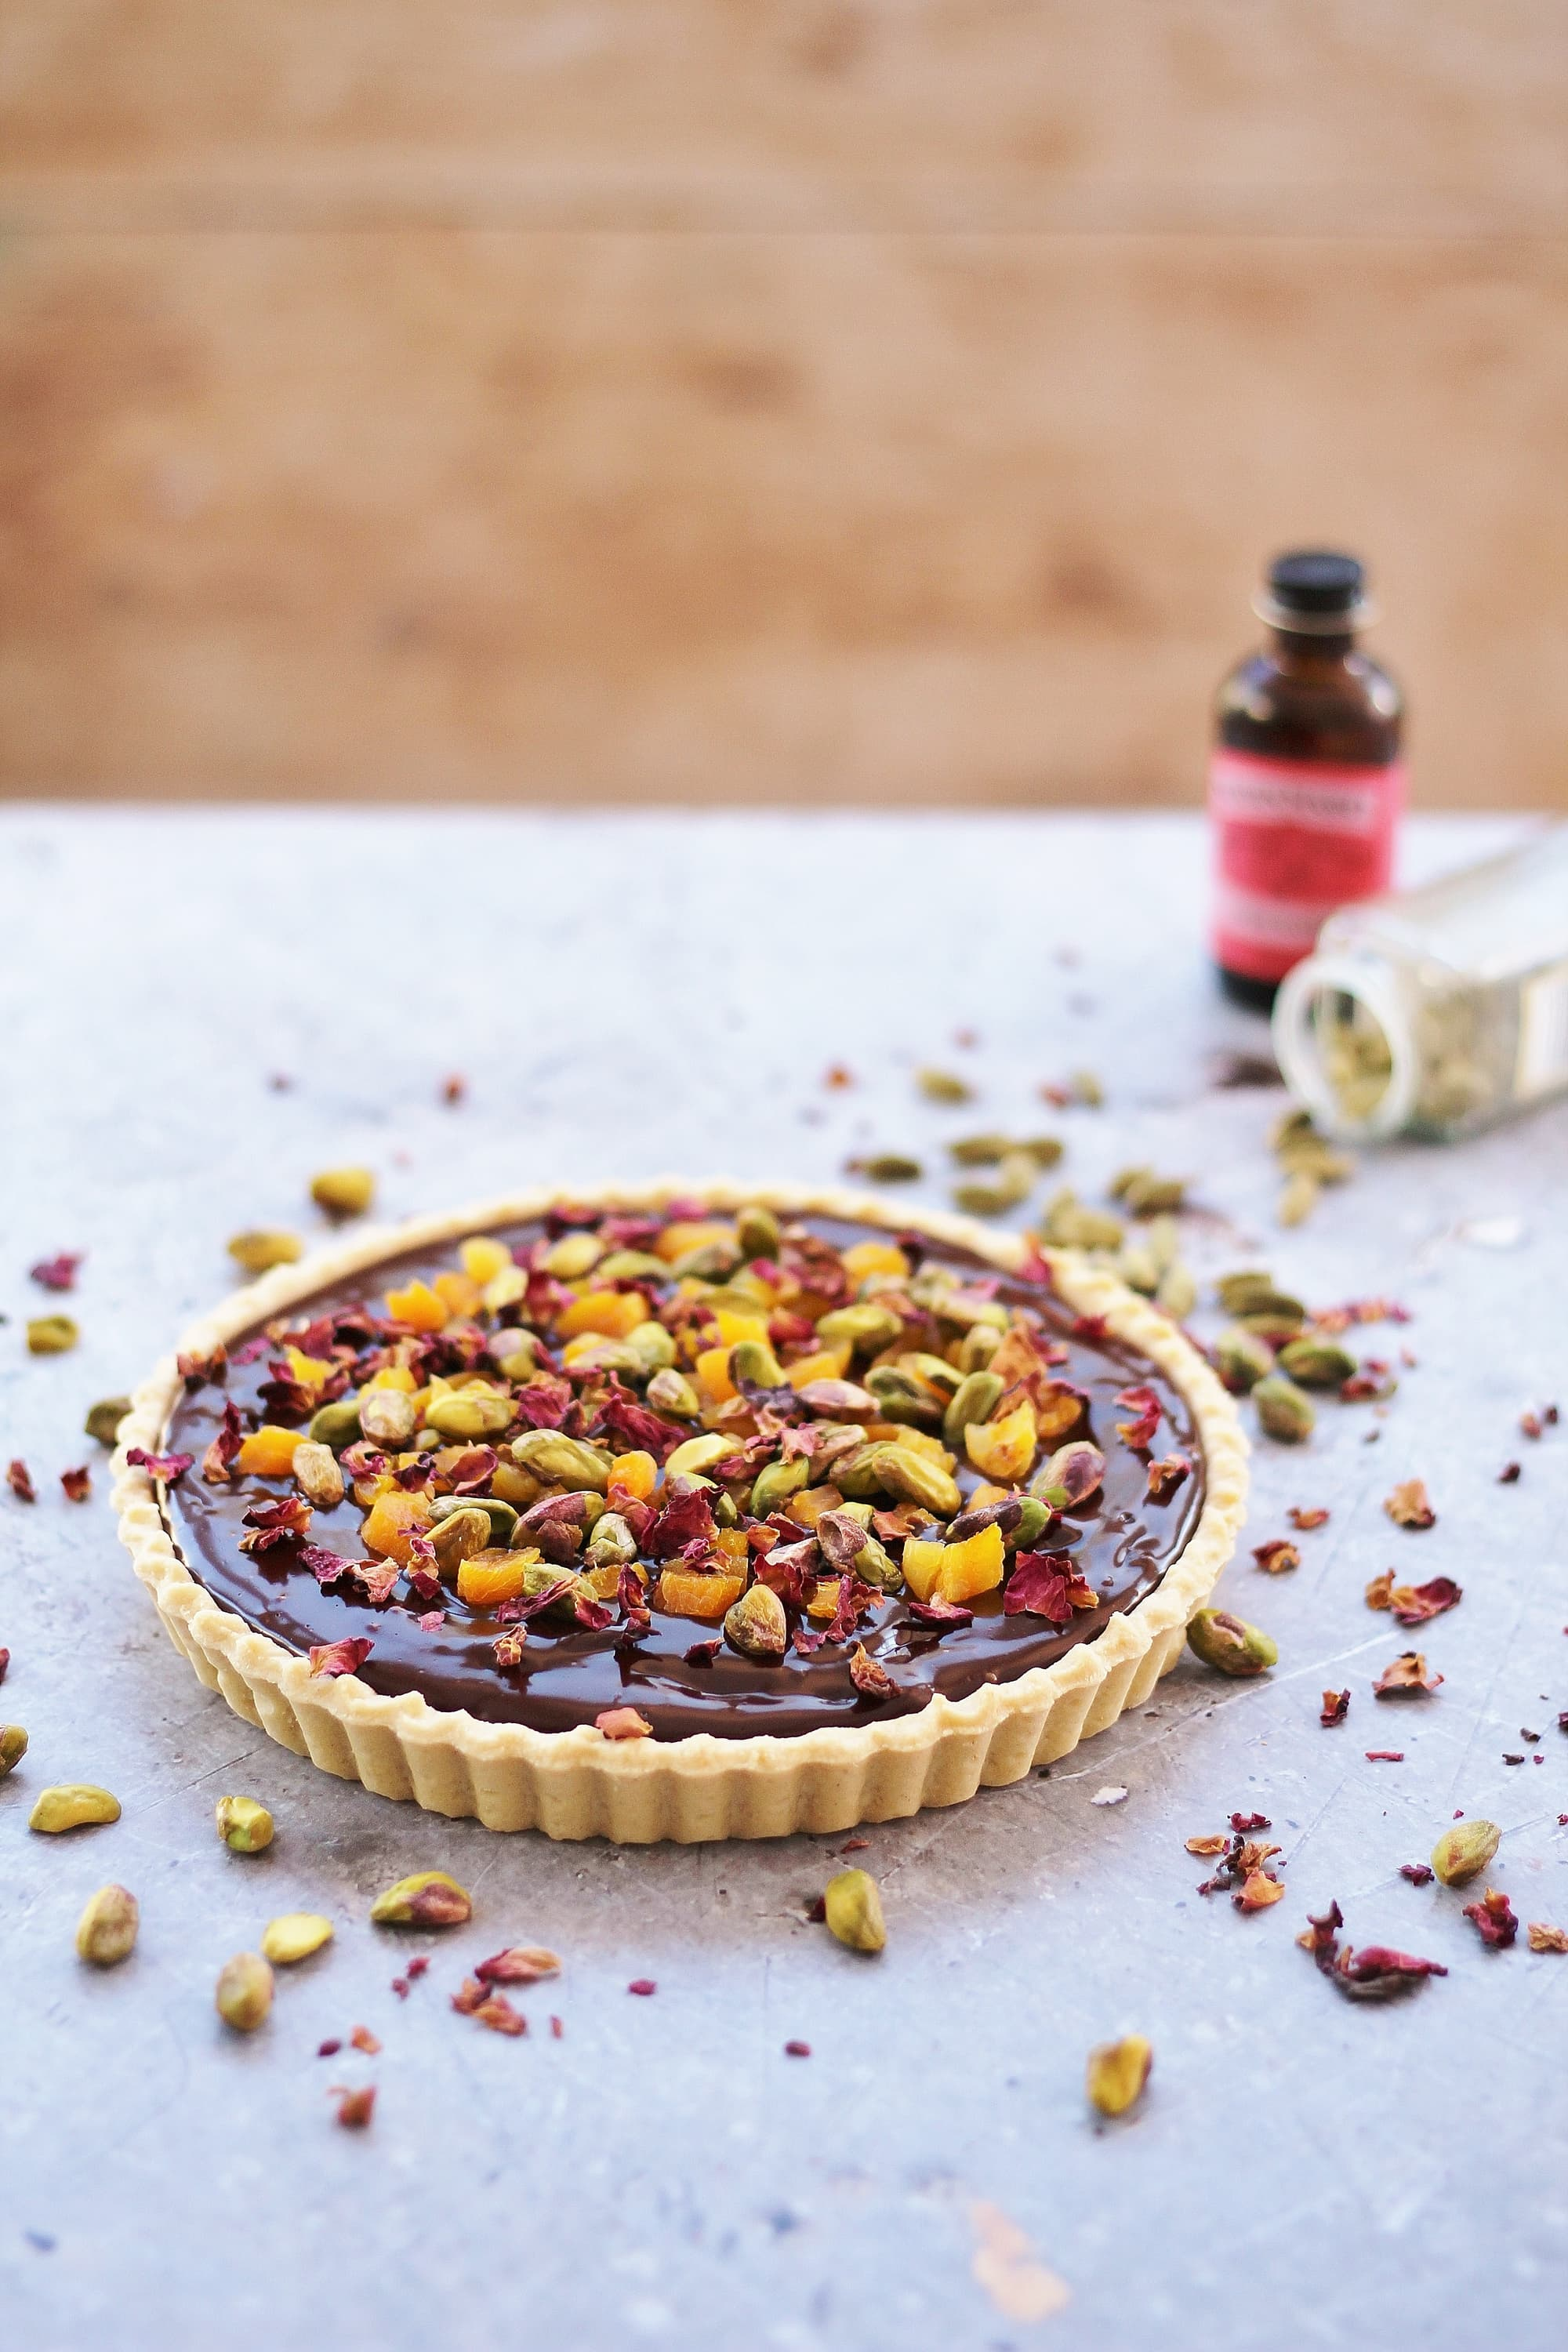 Chocolate Tart with Cardamom, Apricots and Rose Petals ...